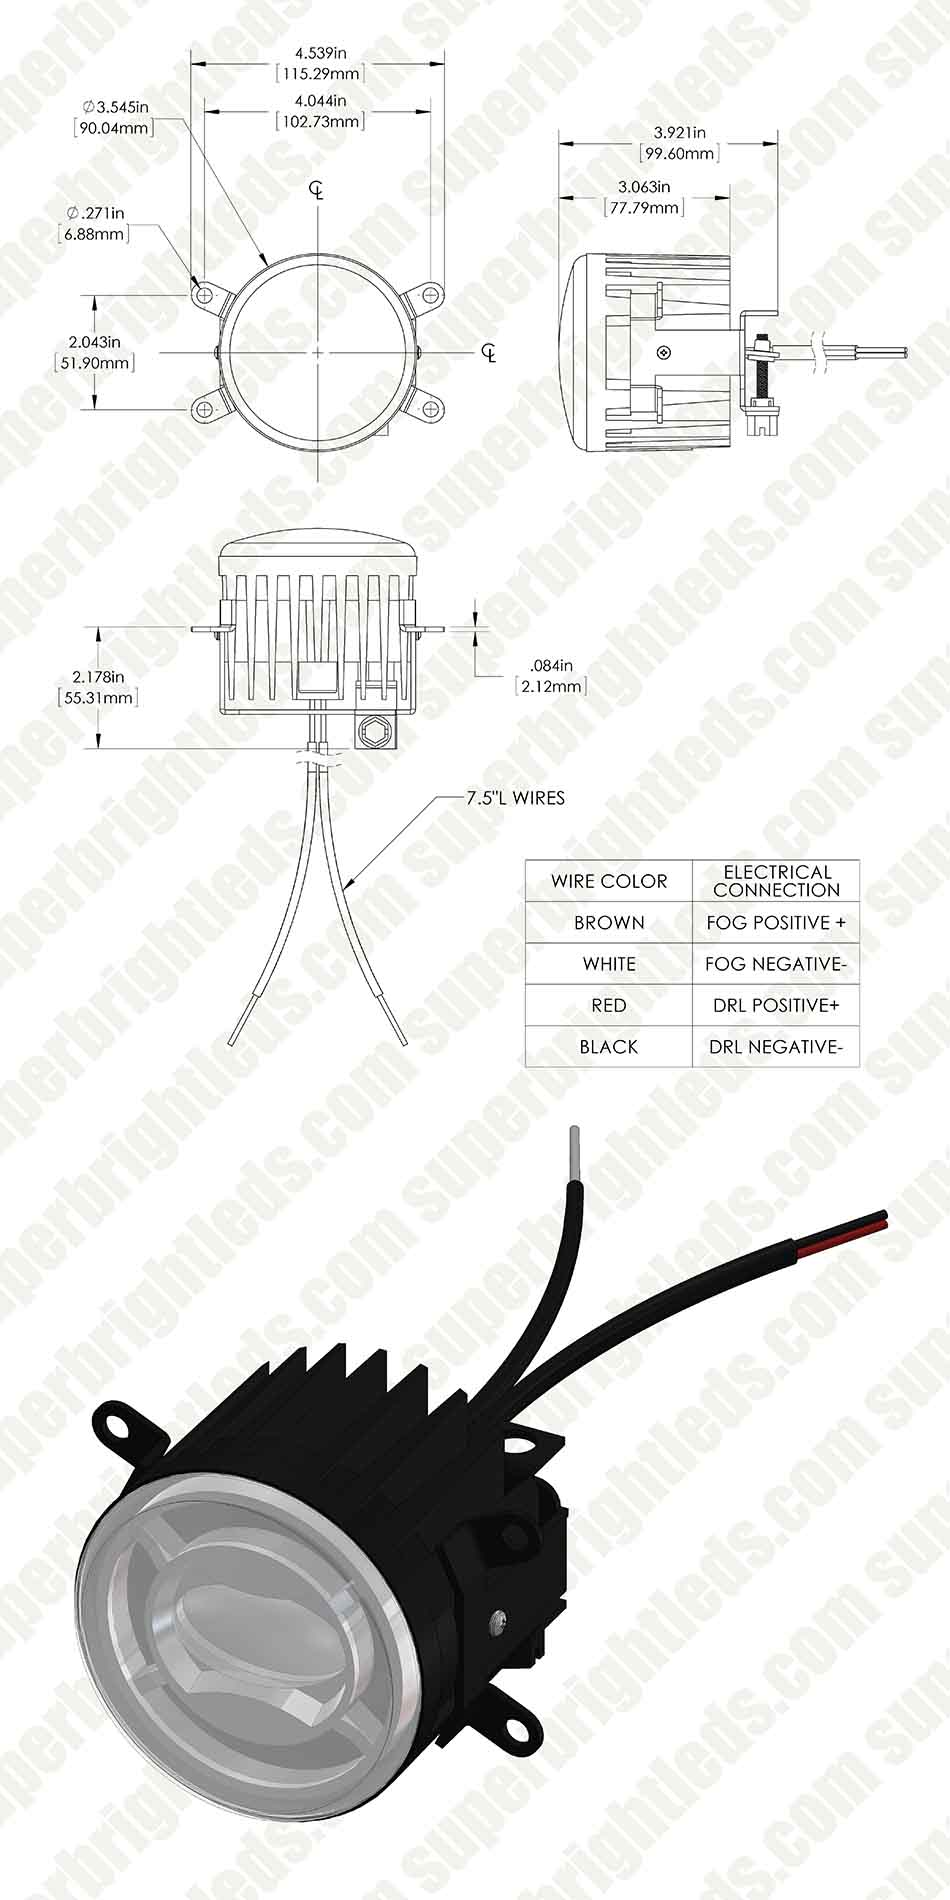 Halo Fog Lights Wiring Diagram | Wiring Diagram Fog L Wiring Diagram on